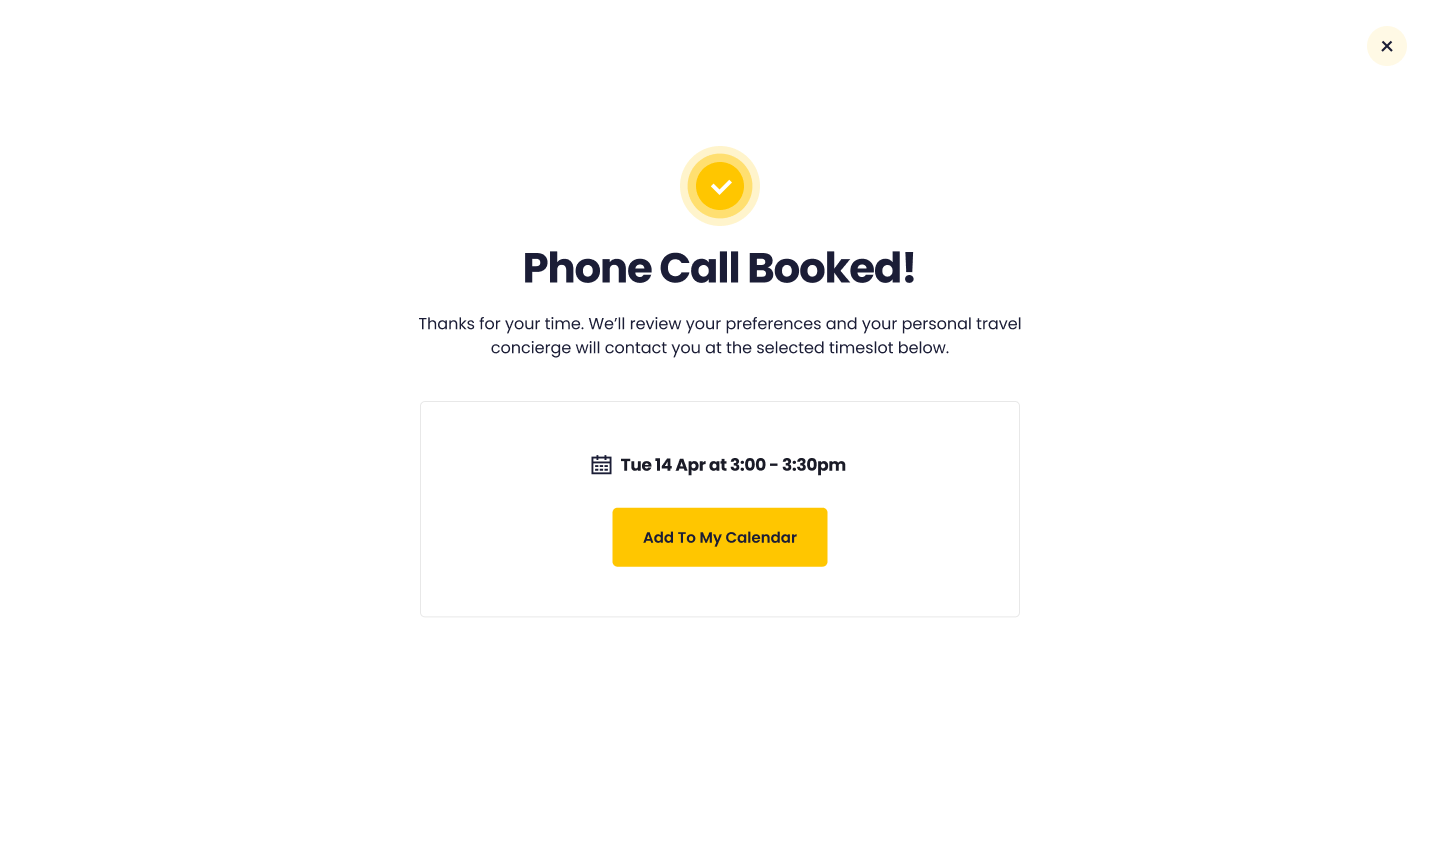 Ability to book a phone call directly with agent on Widgety Holiday Search